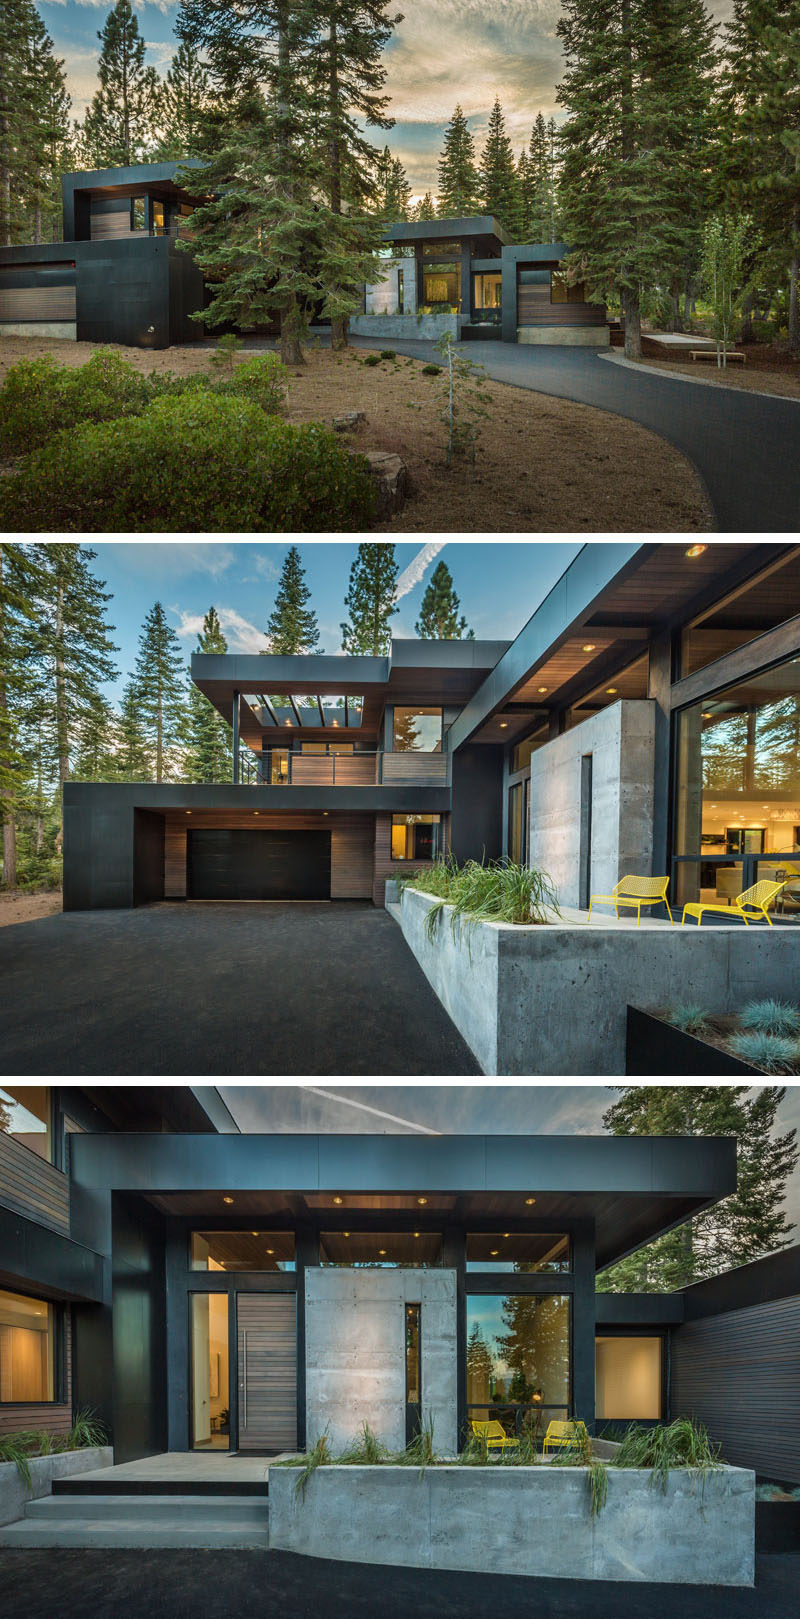 18 Modern House In The Forest // This home tucked into the forest is surrounded by trees on all sides, creating a beautiful scene no matter the season.#ModernHouse #ModernArchitecture #HouseInForest #HouseDesign